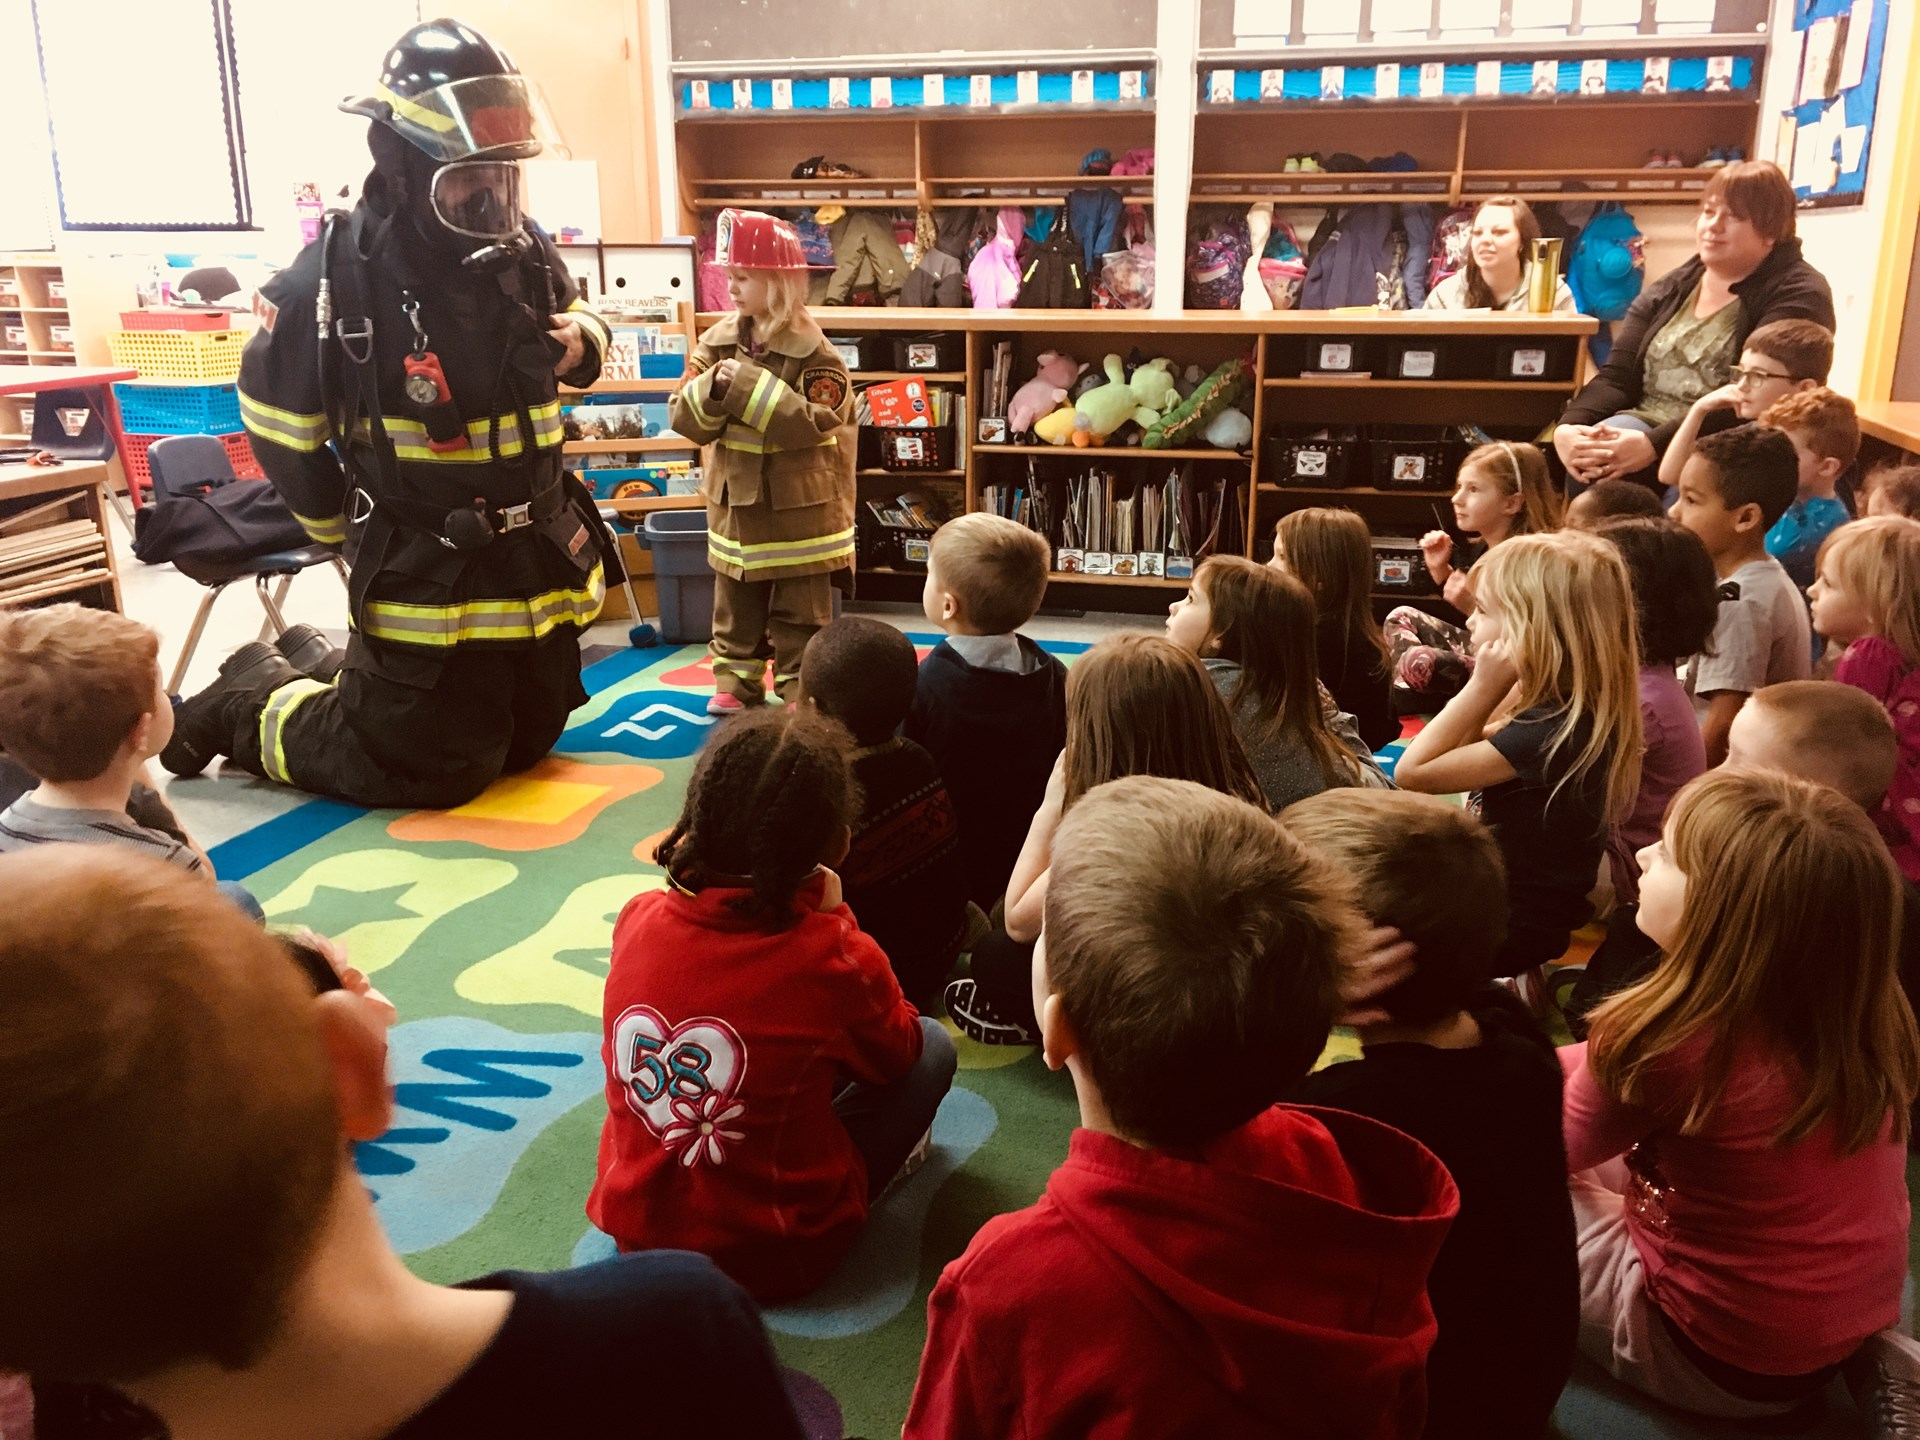 Fire Safety Demonstration at Steeples Elementary School